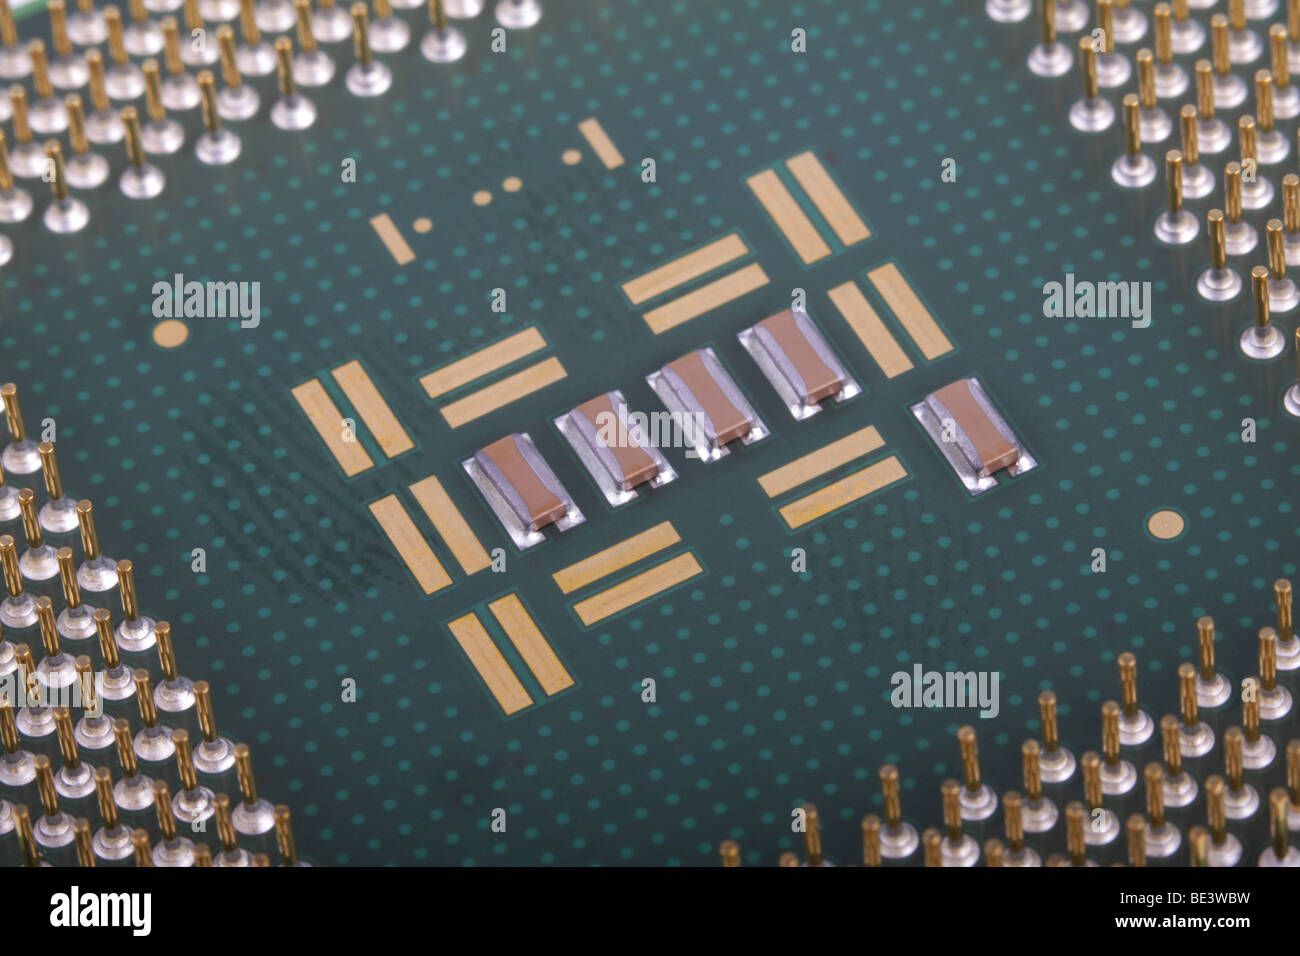 Macro of a computer processor with some fine details. - Stock Image